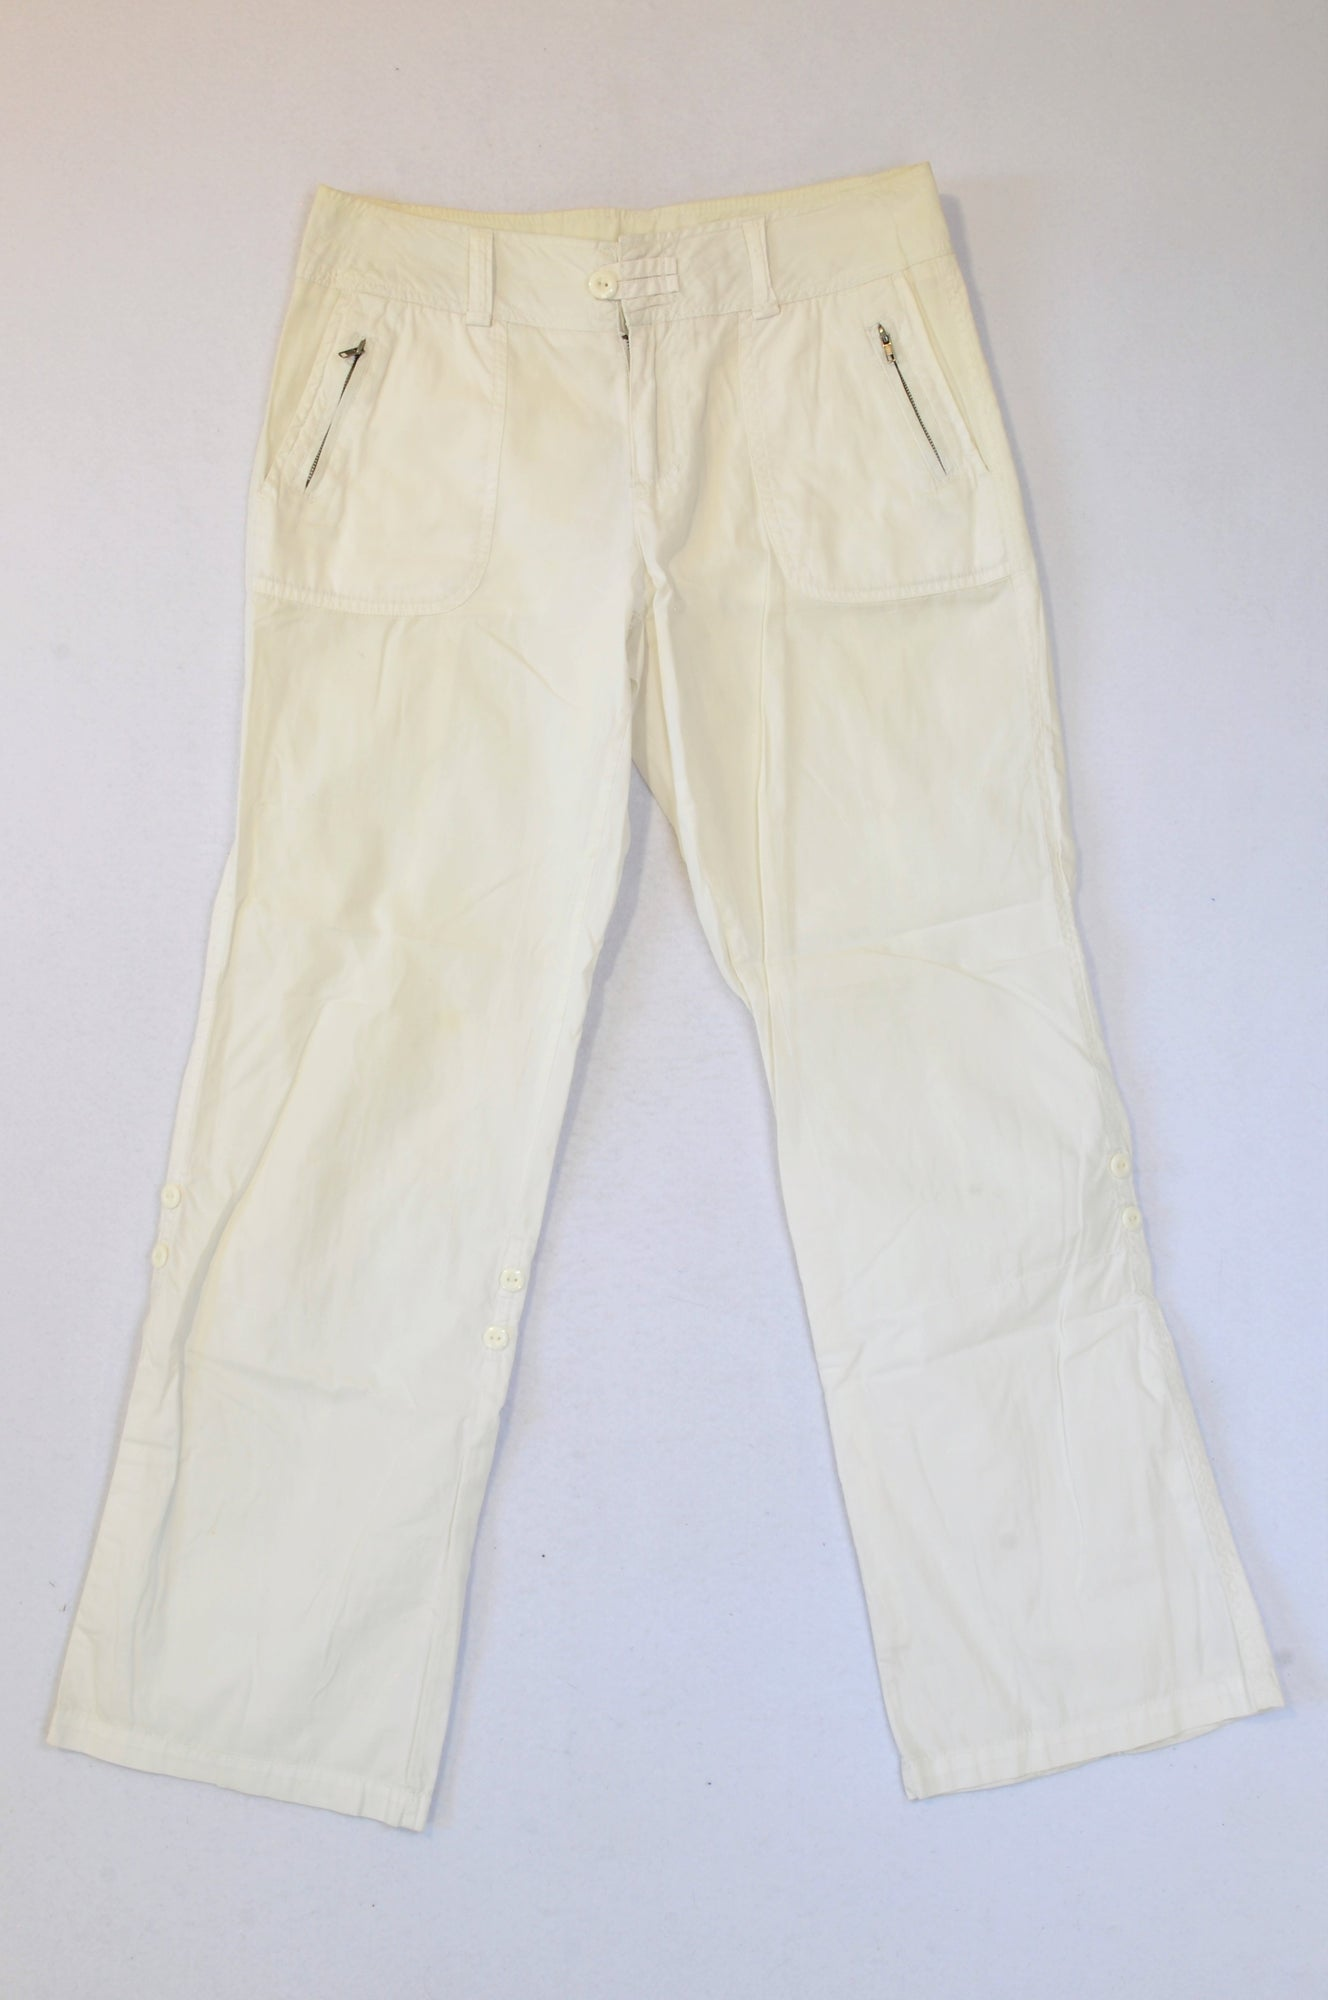 Woolworths White Lightweight Button Pants Women Size 10